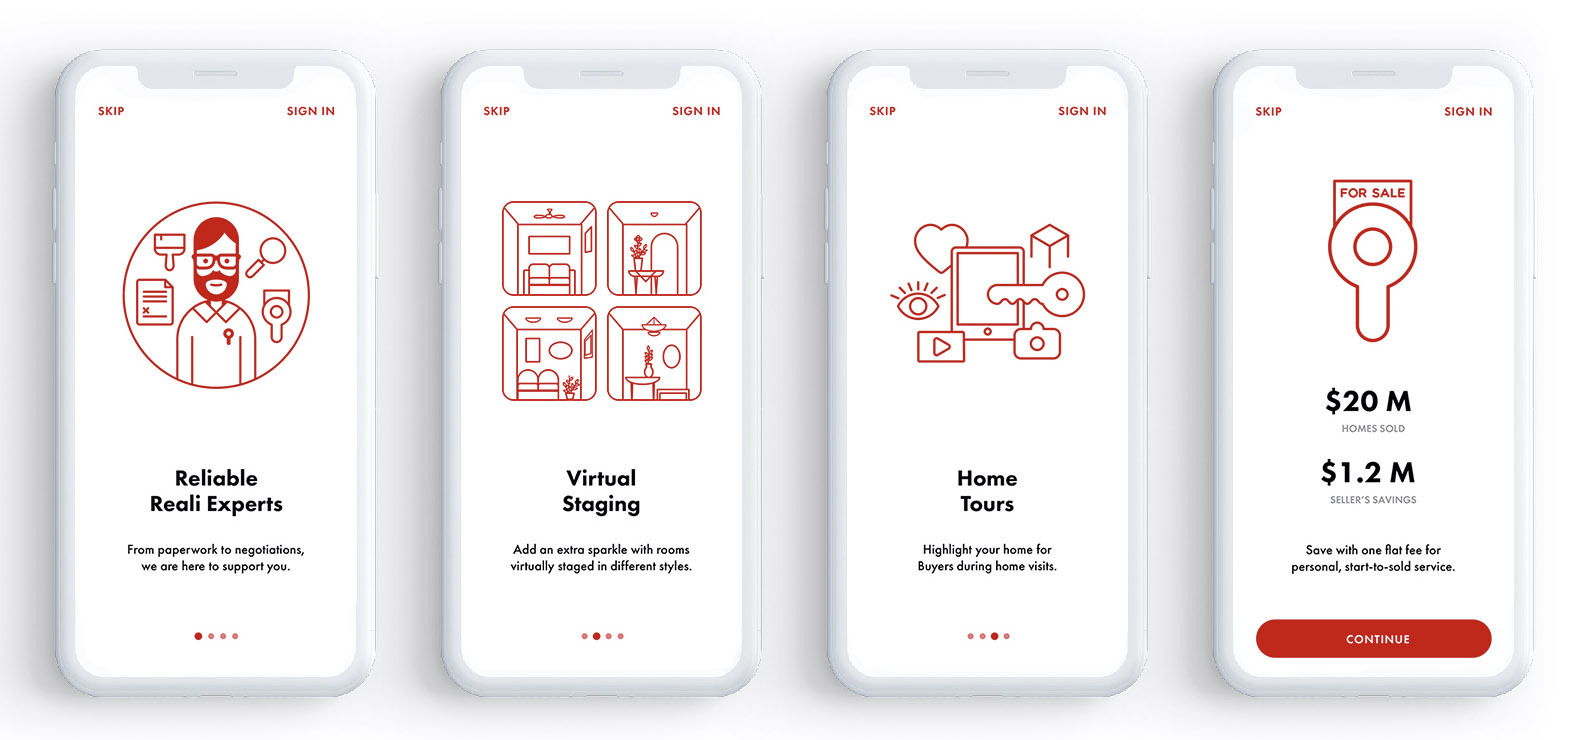 Reali phone app product screens: onboarding